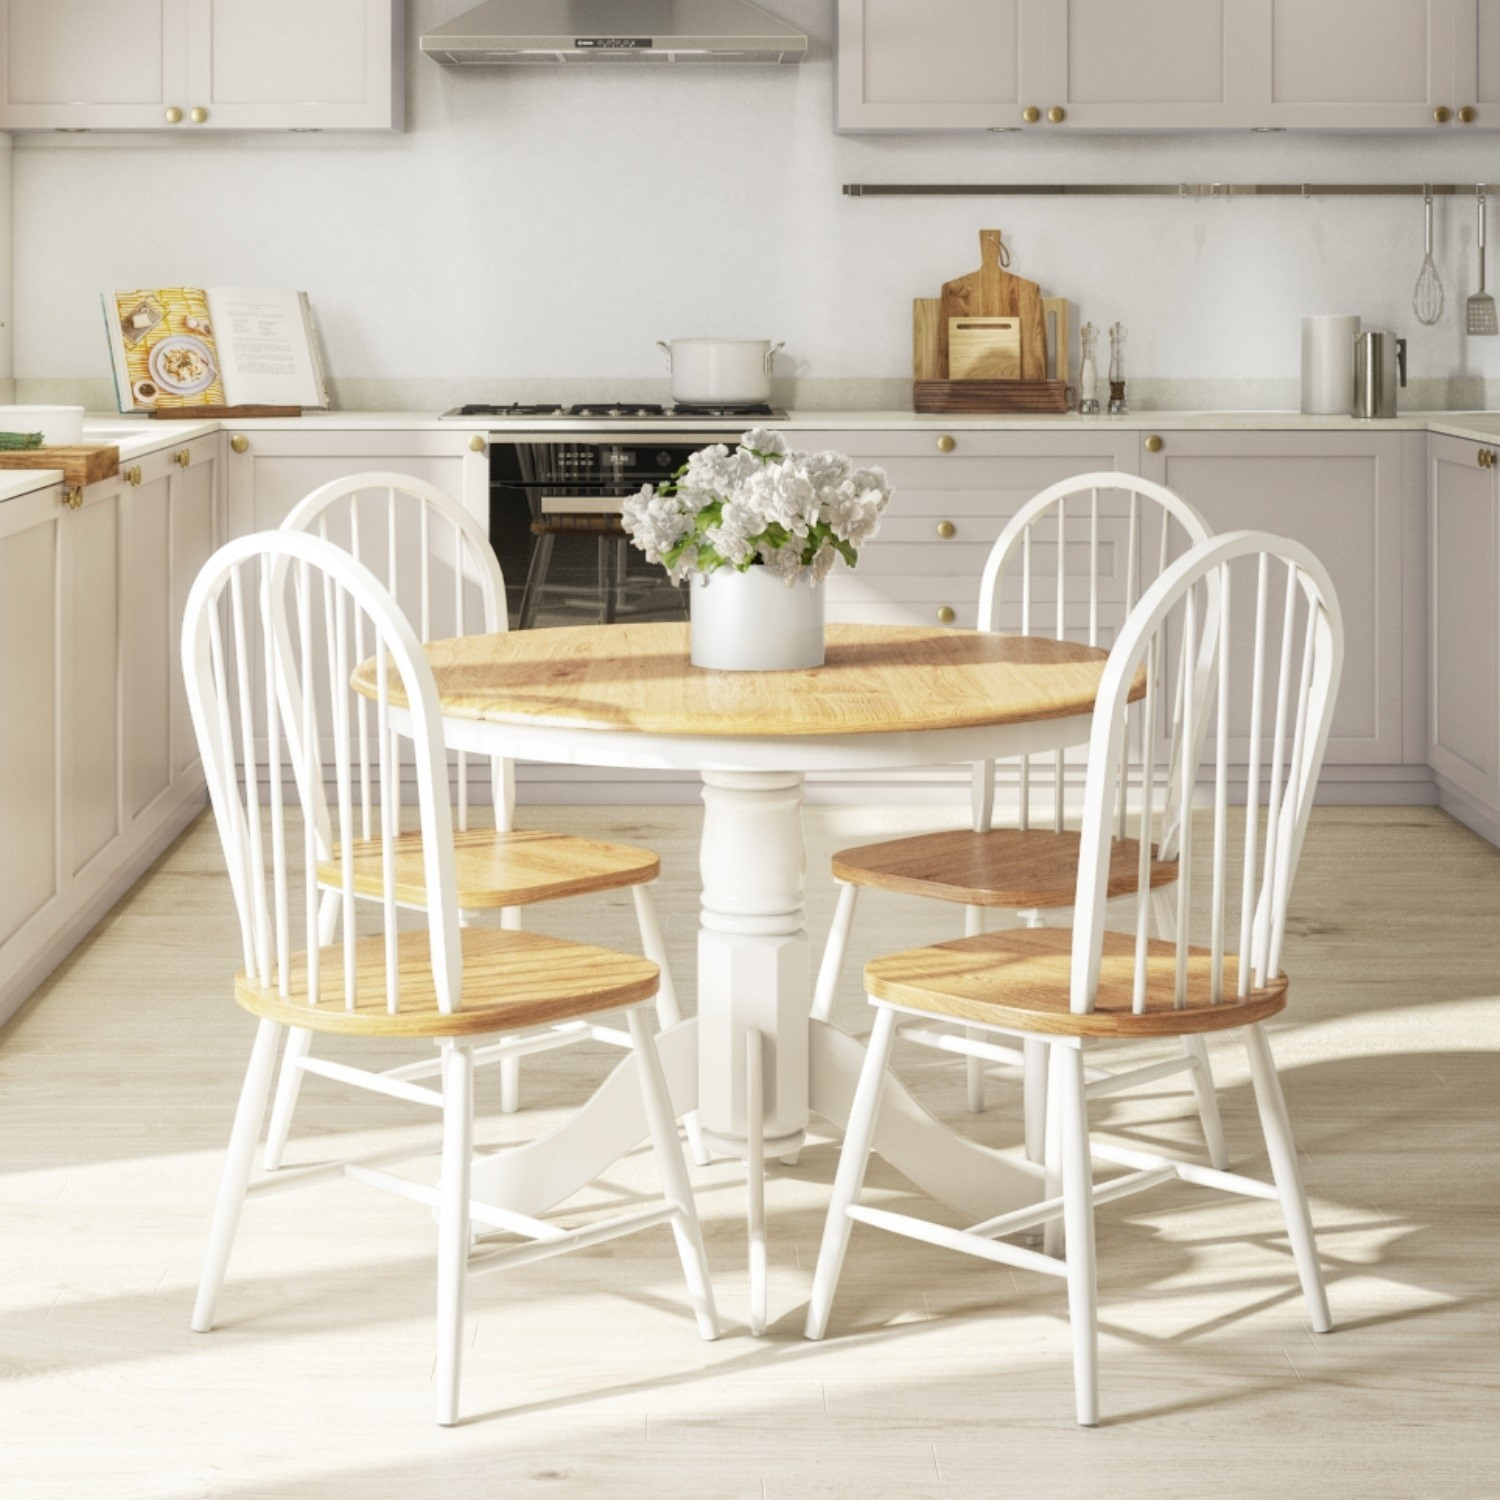 Dining Set Round Table: Rhode Island Natural & White Round Kitchen Dining Table